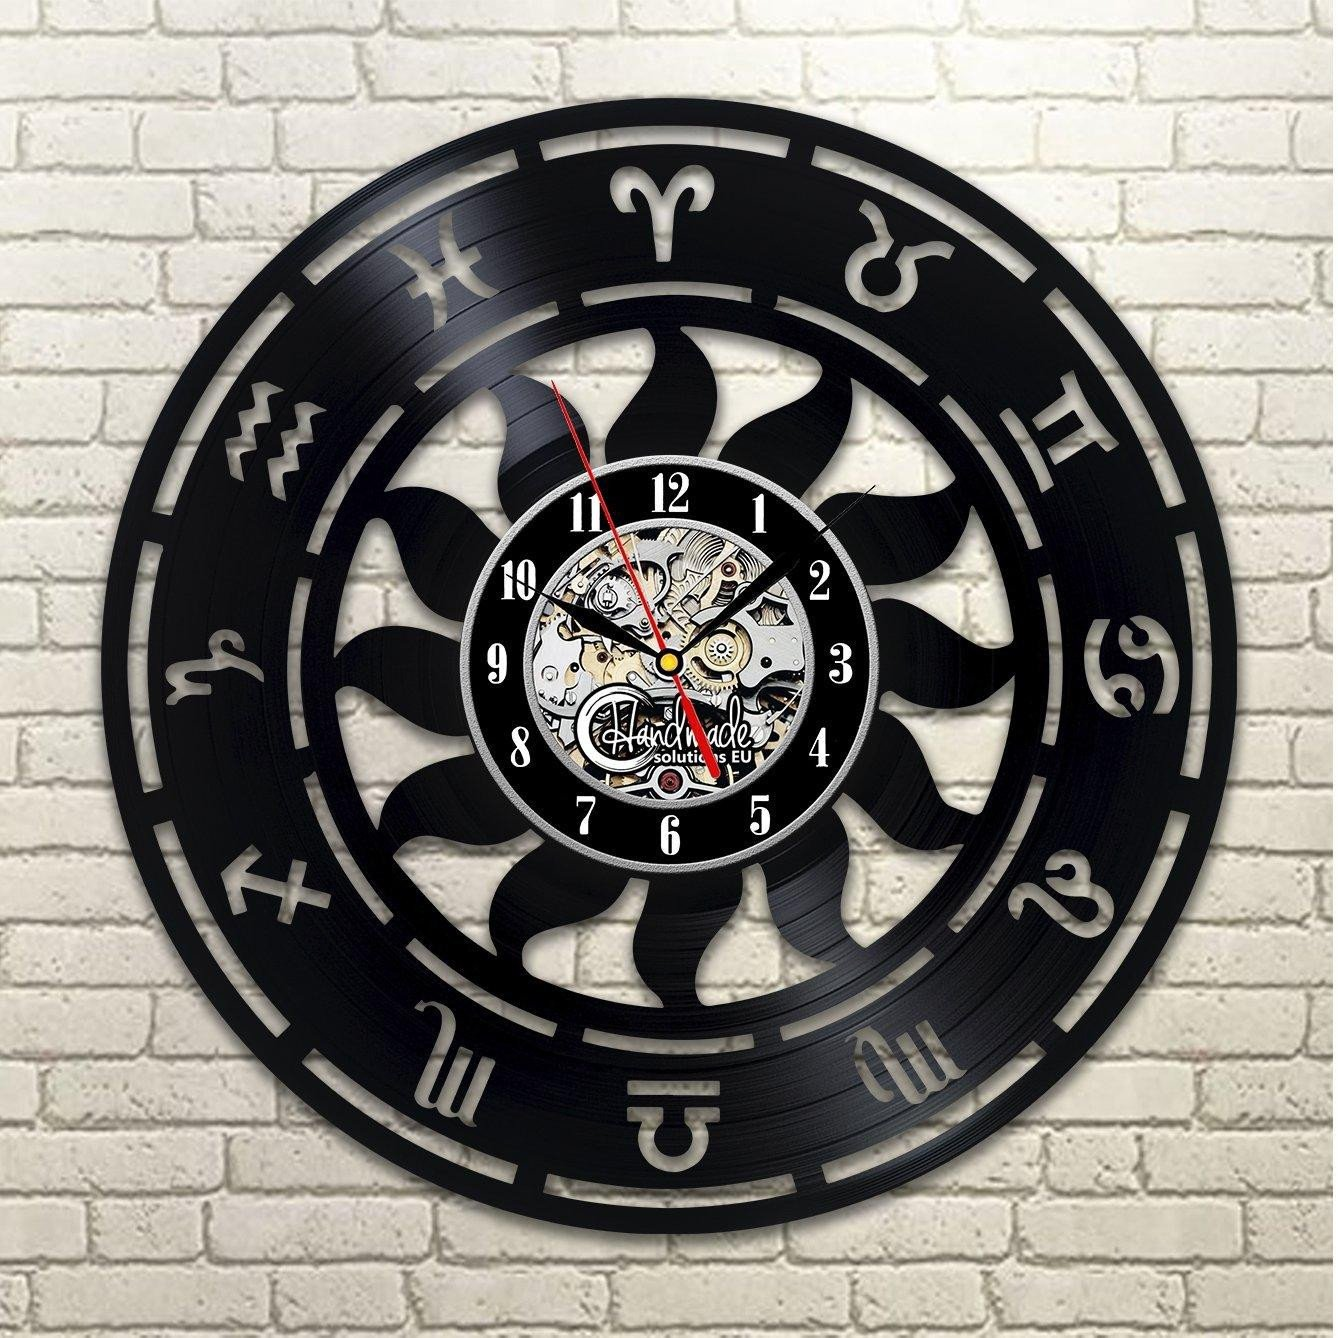 Signs for Bedroom Walls Unique Diy Gift for Zodiac Vinyl Wall Clock Nursery Bedroom Decor Room Art Signs Decorations Birthday Gifts for Horoscope ornament Sign Wall Clock for